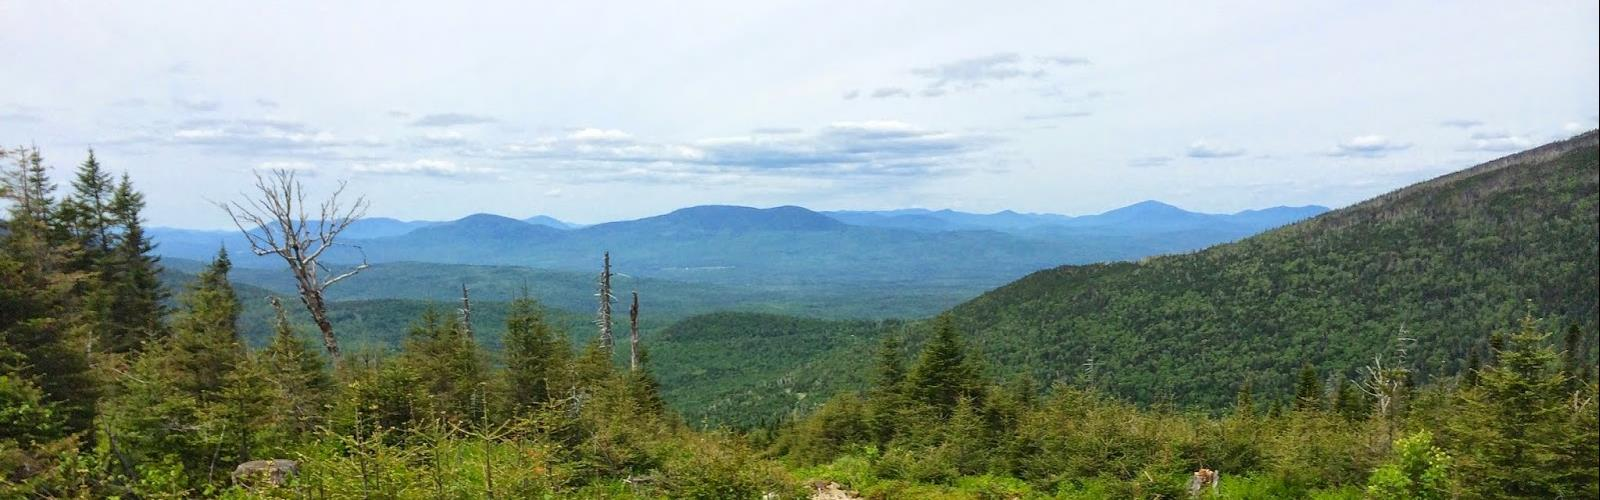 Mount Redington, Maine - Hiking